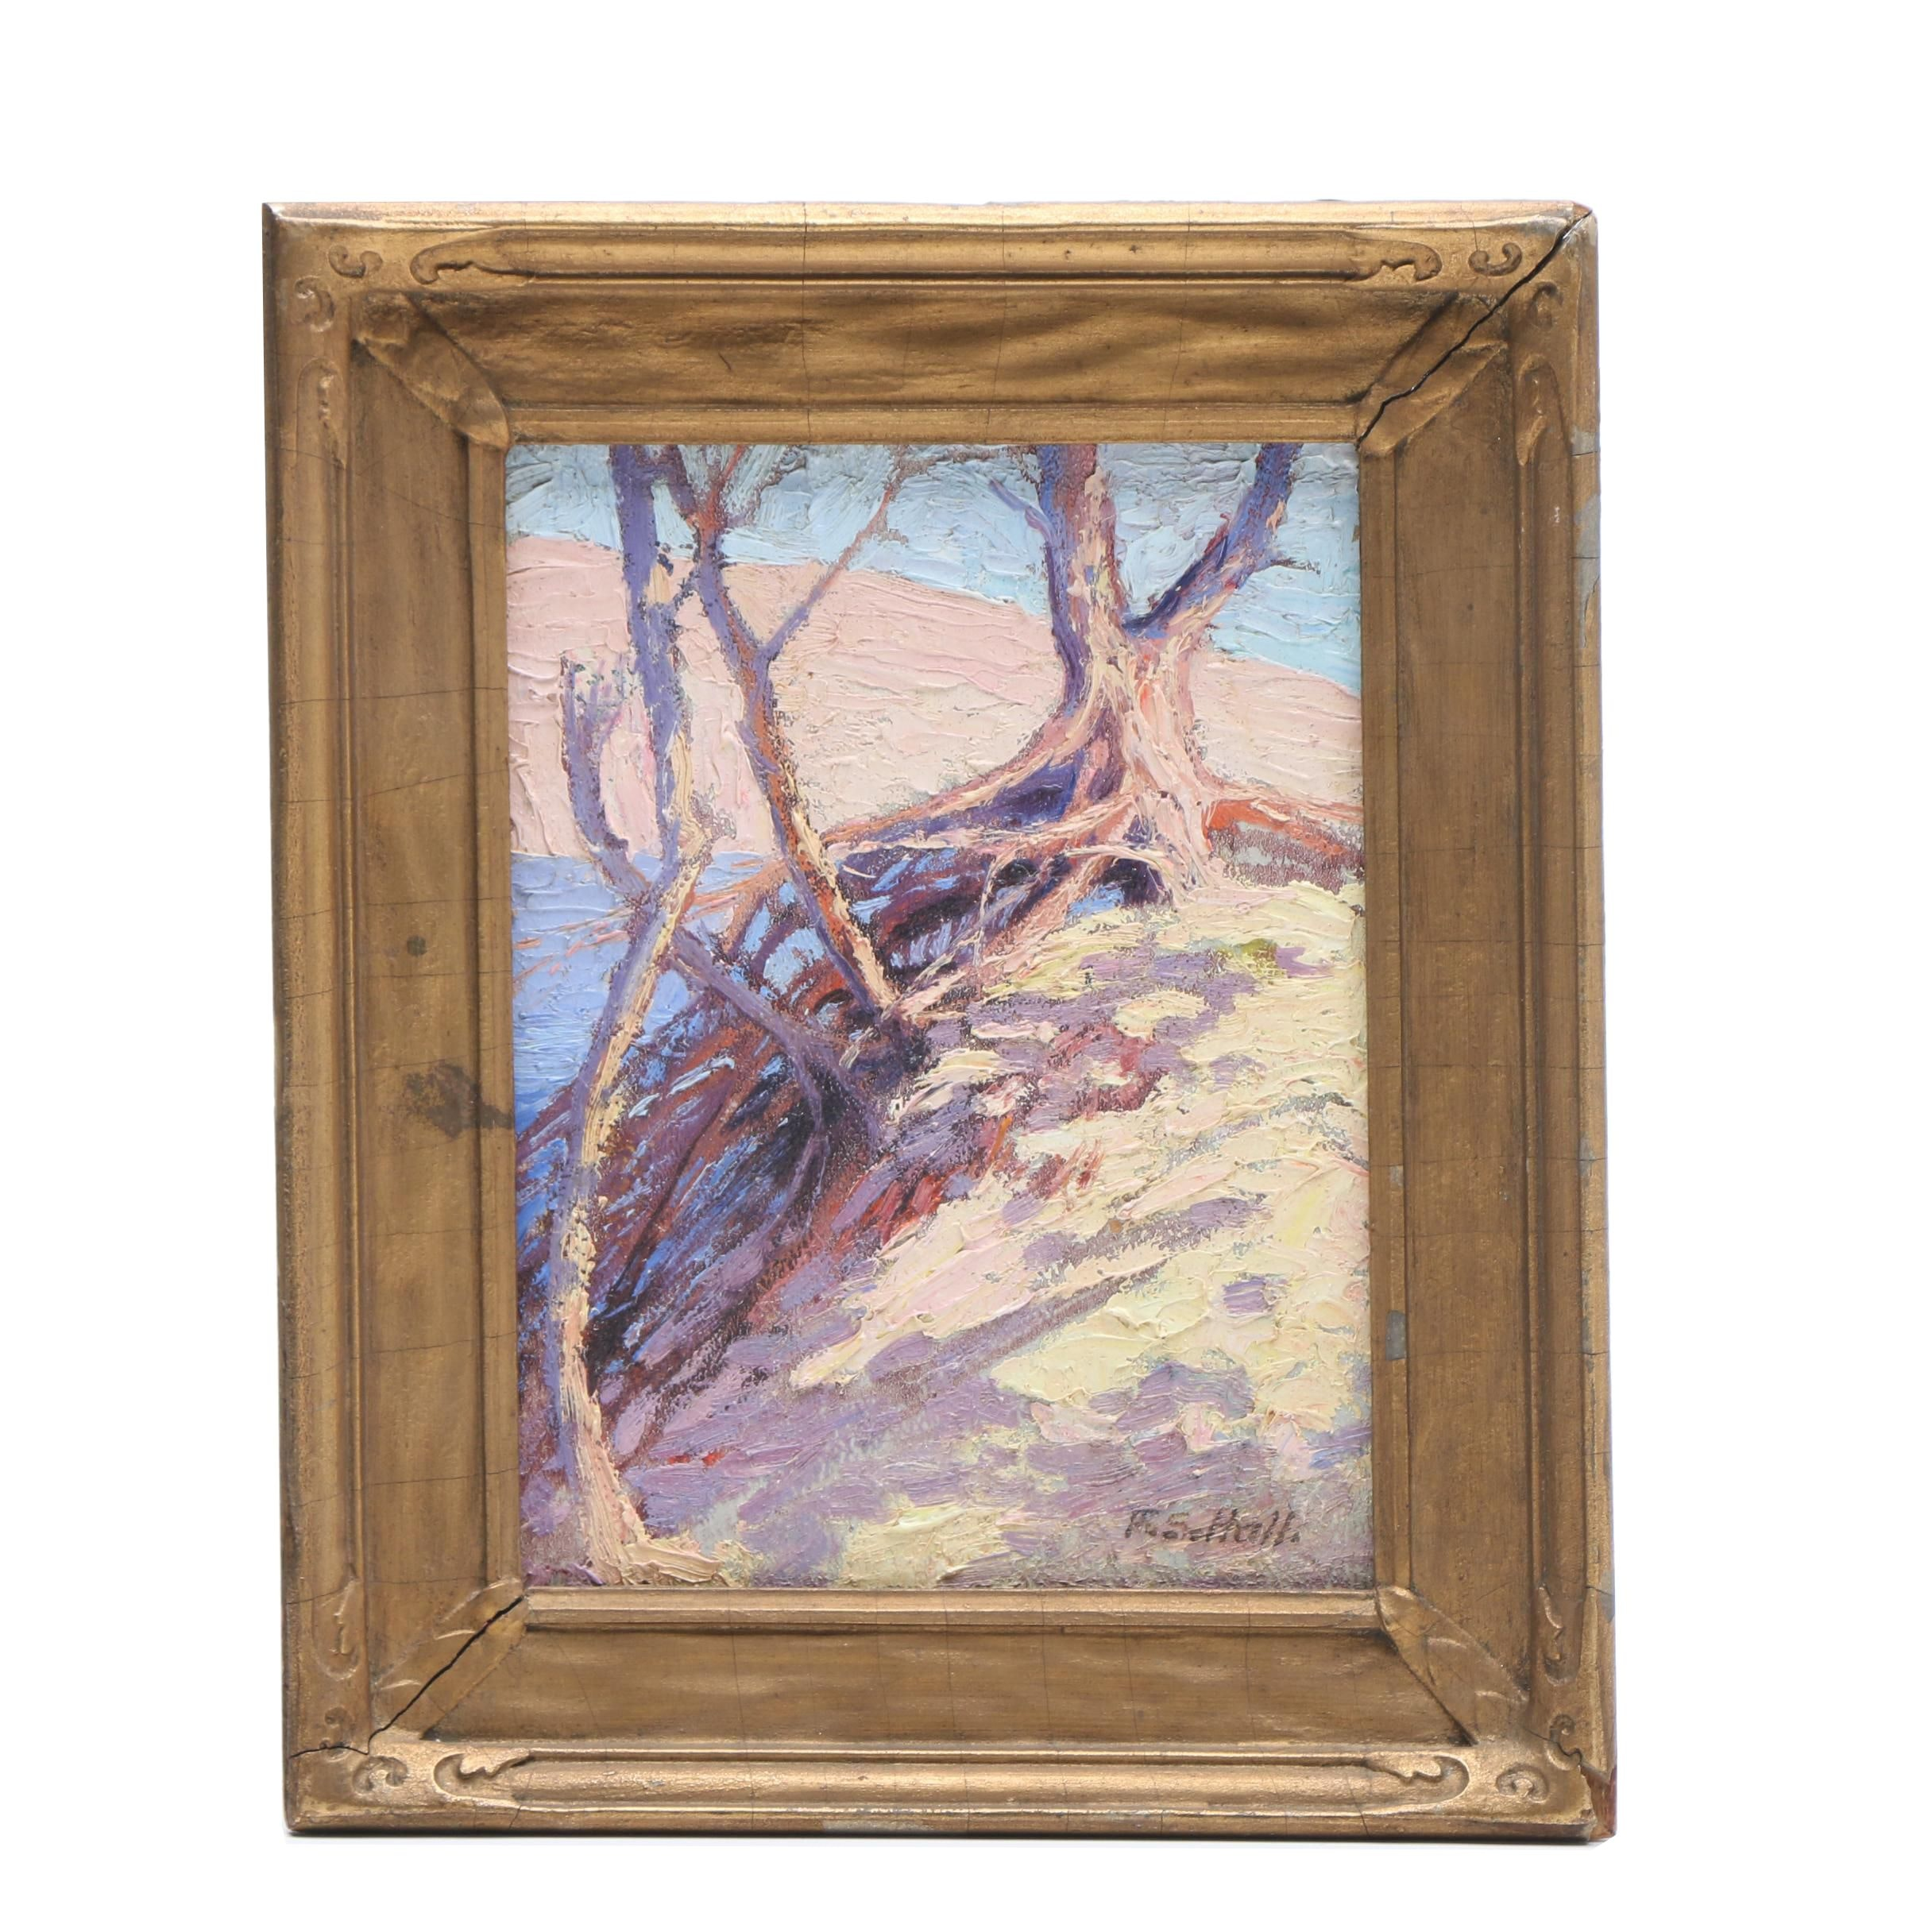 R. S. Hall Post-Impressionist Oil Landscape Painting